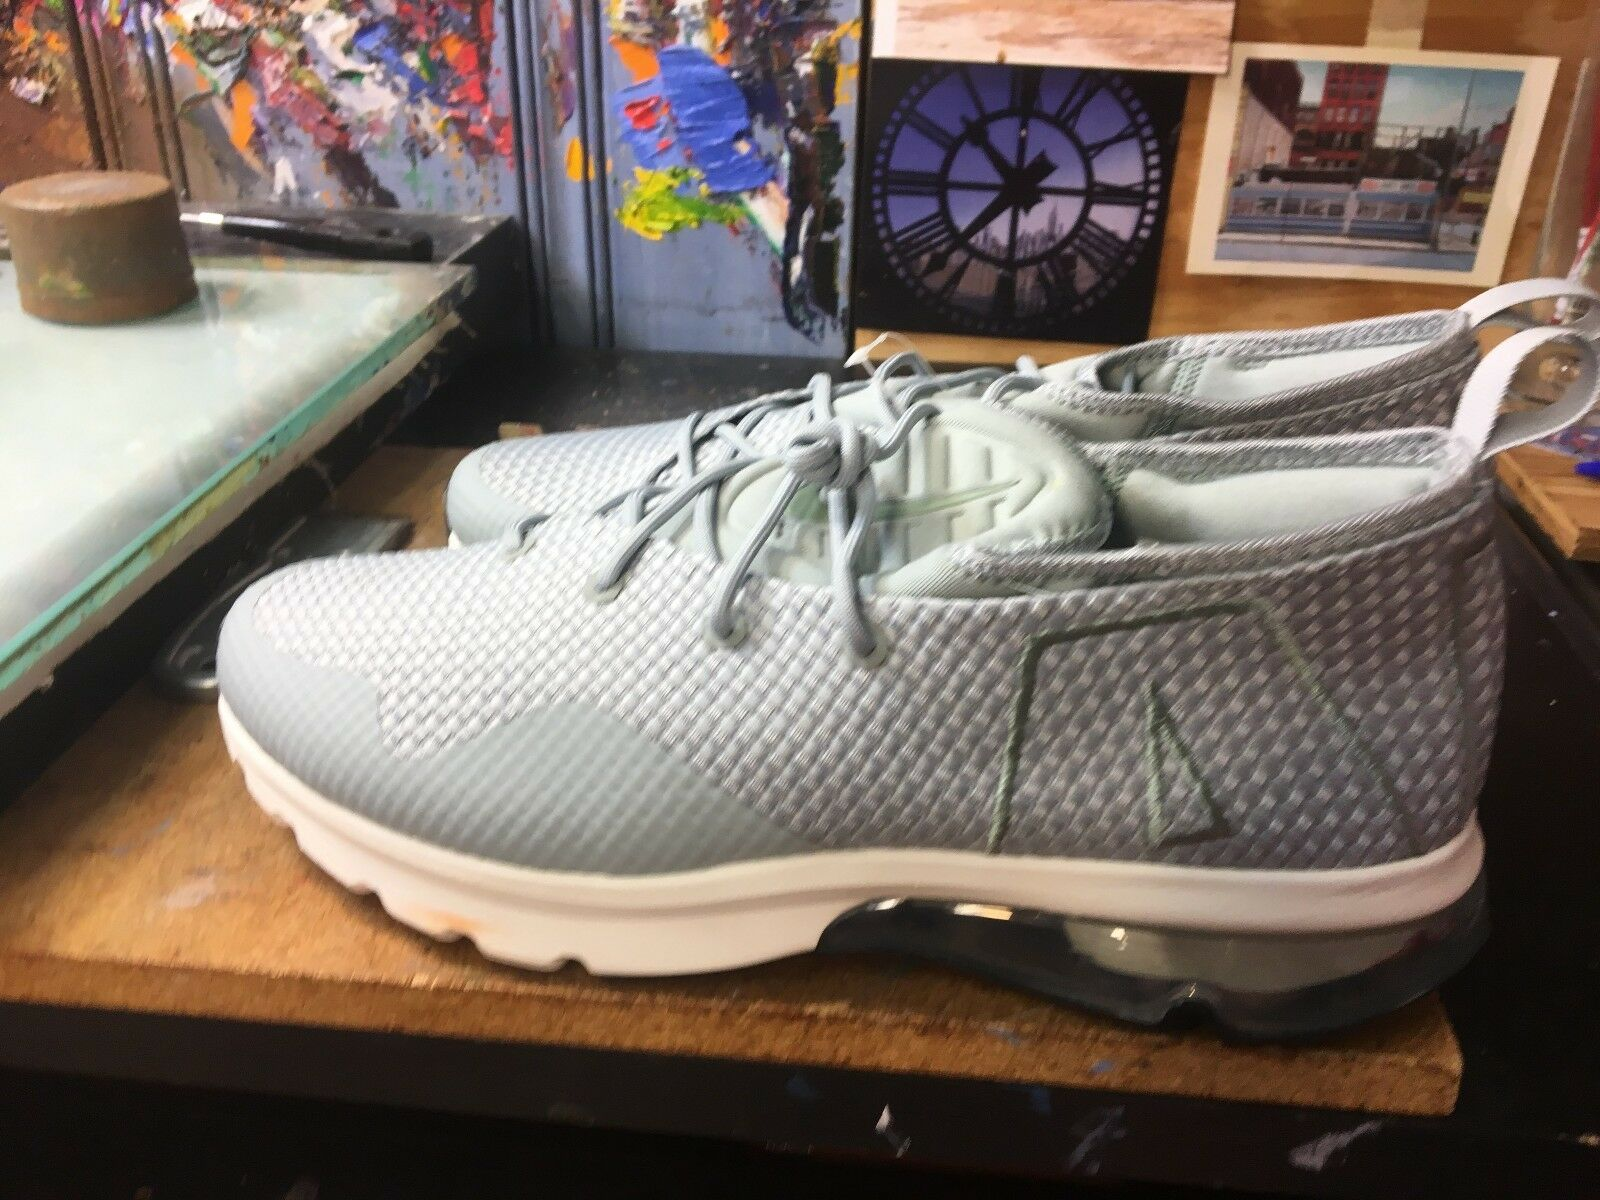 Nike Air Max Flair Size 50 Woven Cool Grey Size Flair US 10 Men's AO1029 002 5f5dc1